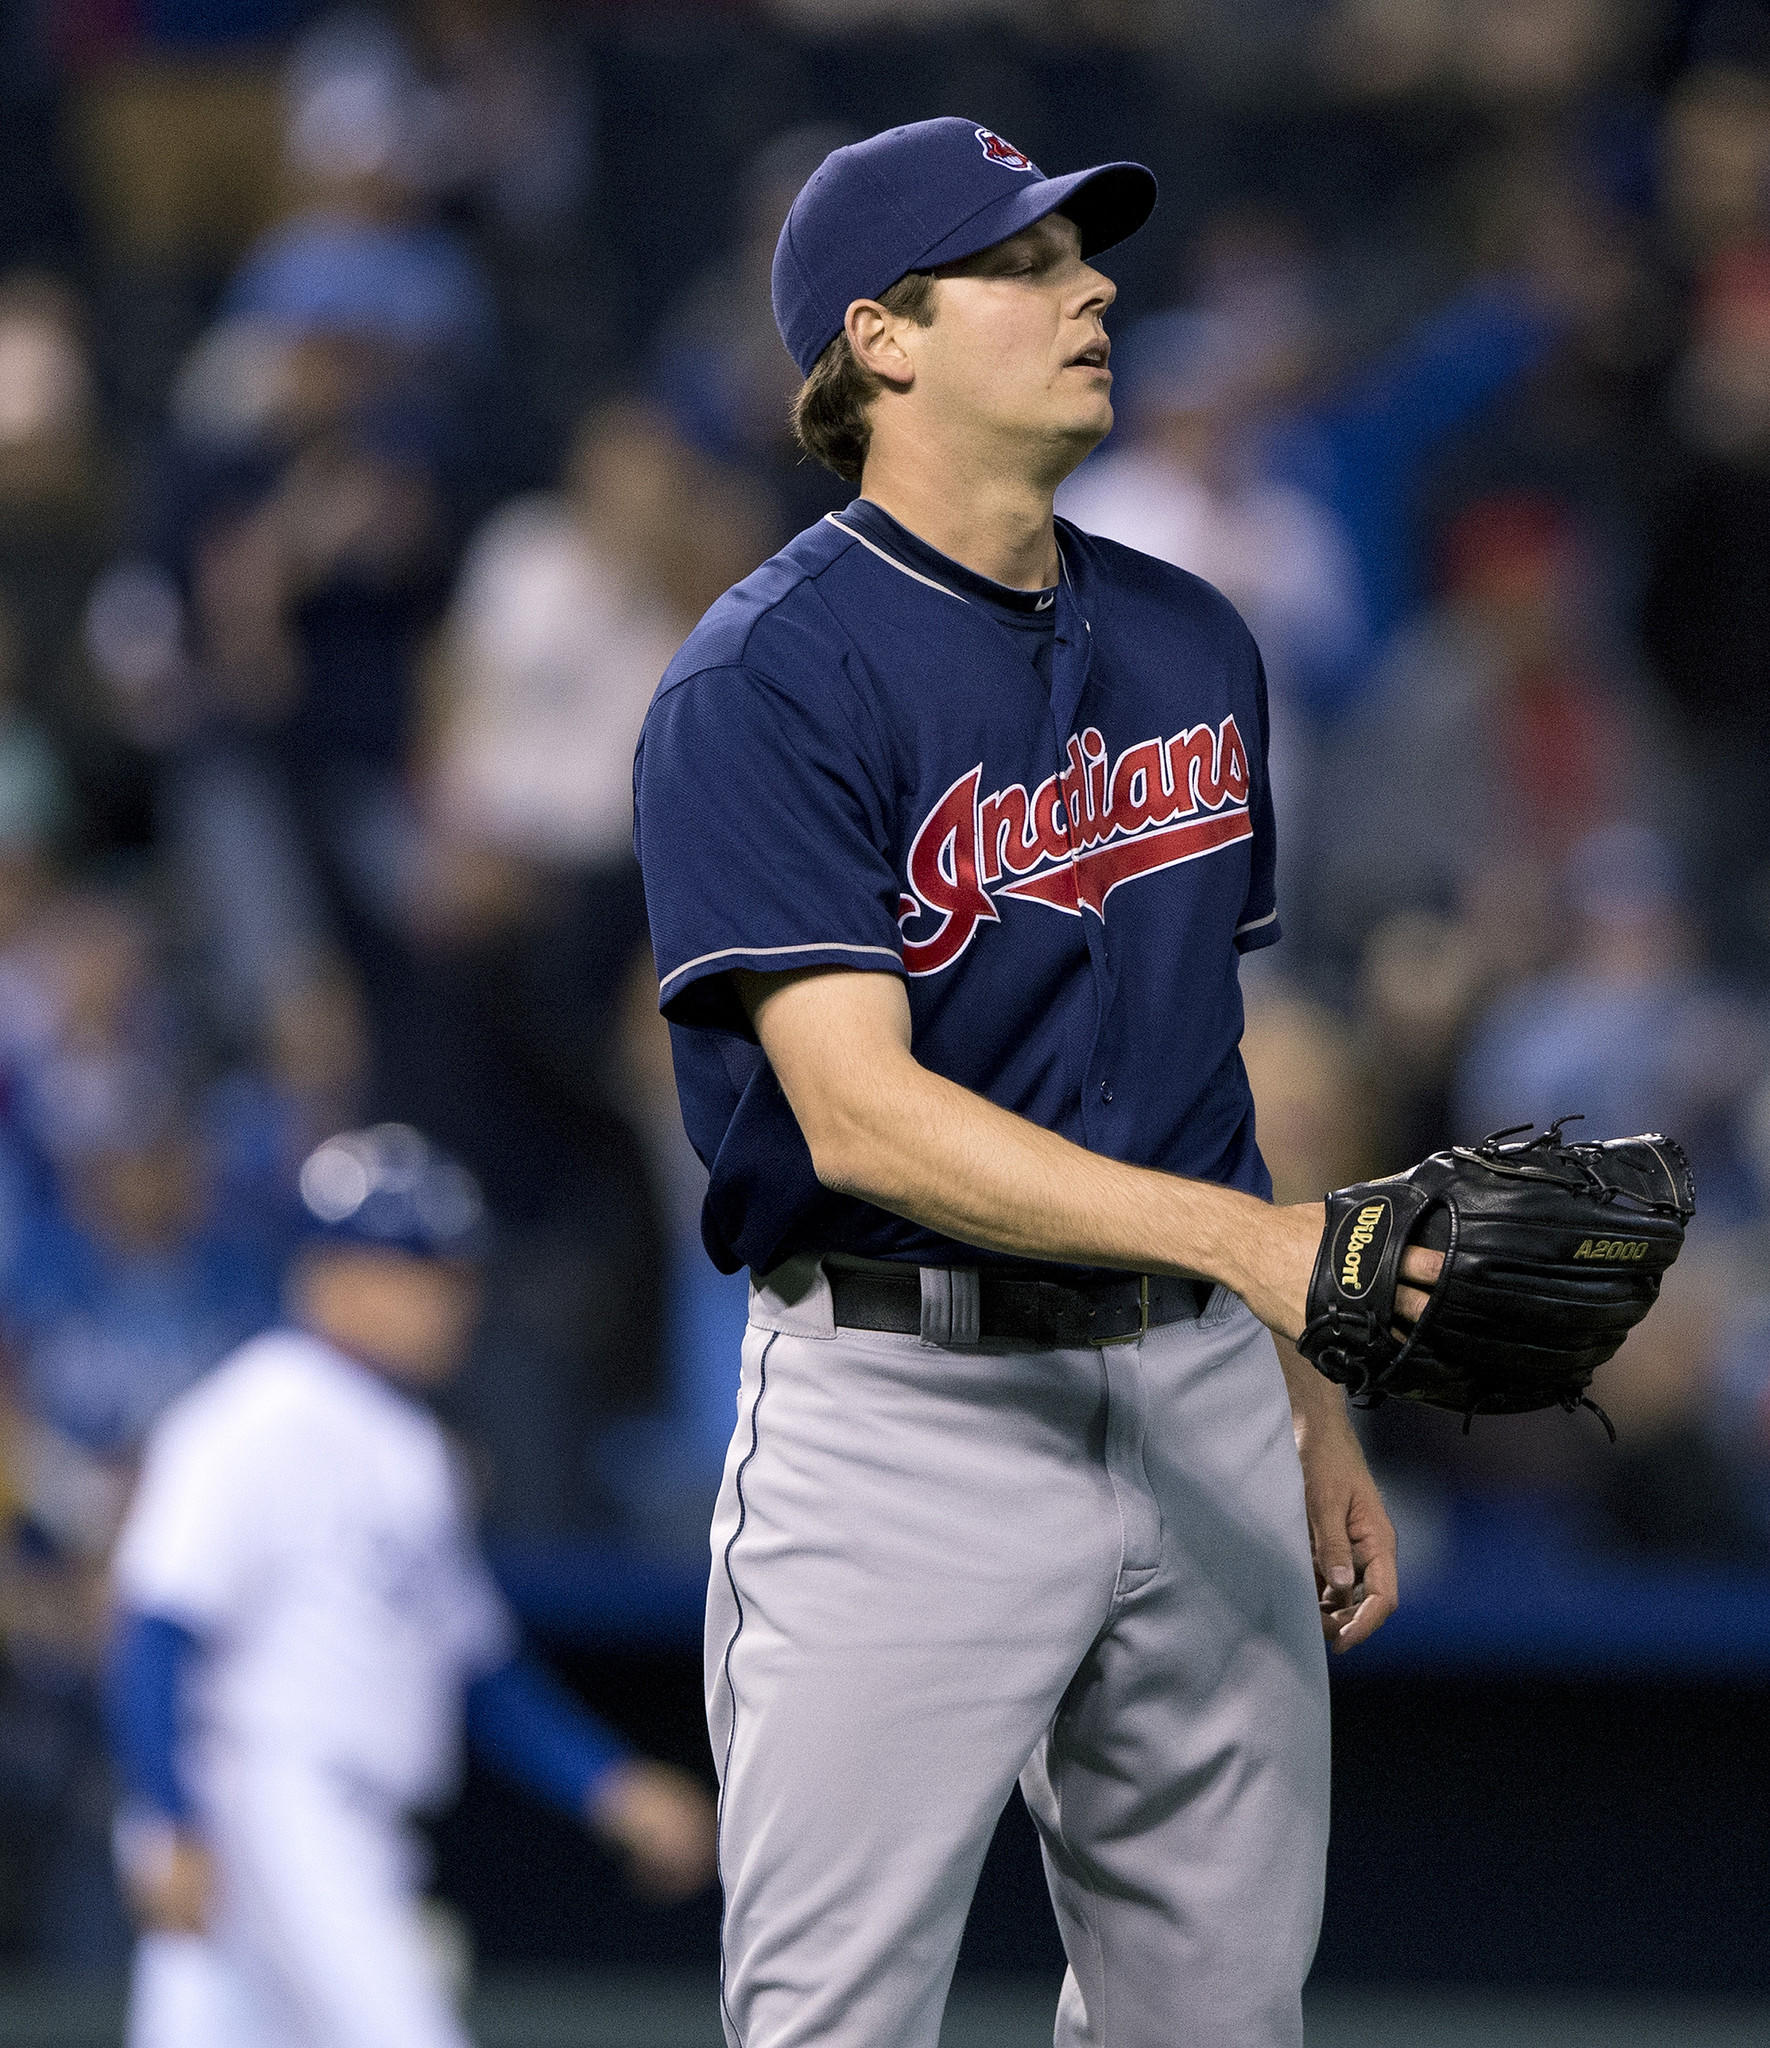 Cleveland Indians relief pitcher Rich Hill looks away after walking the Kansas City Royals' Eric Hosmer with the bases loaded to score Alex Gordon in the seventh inning in a game last April.